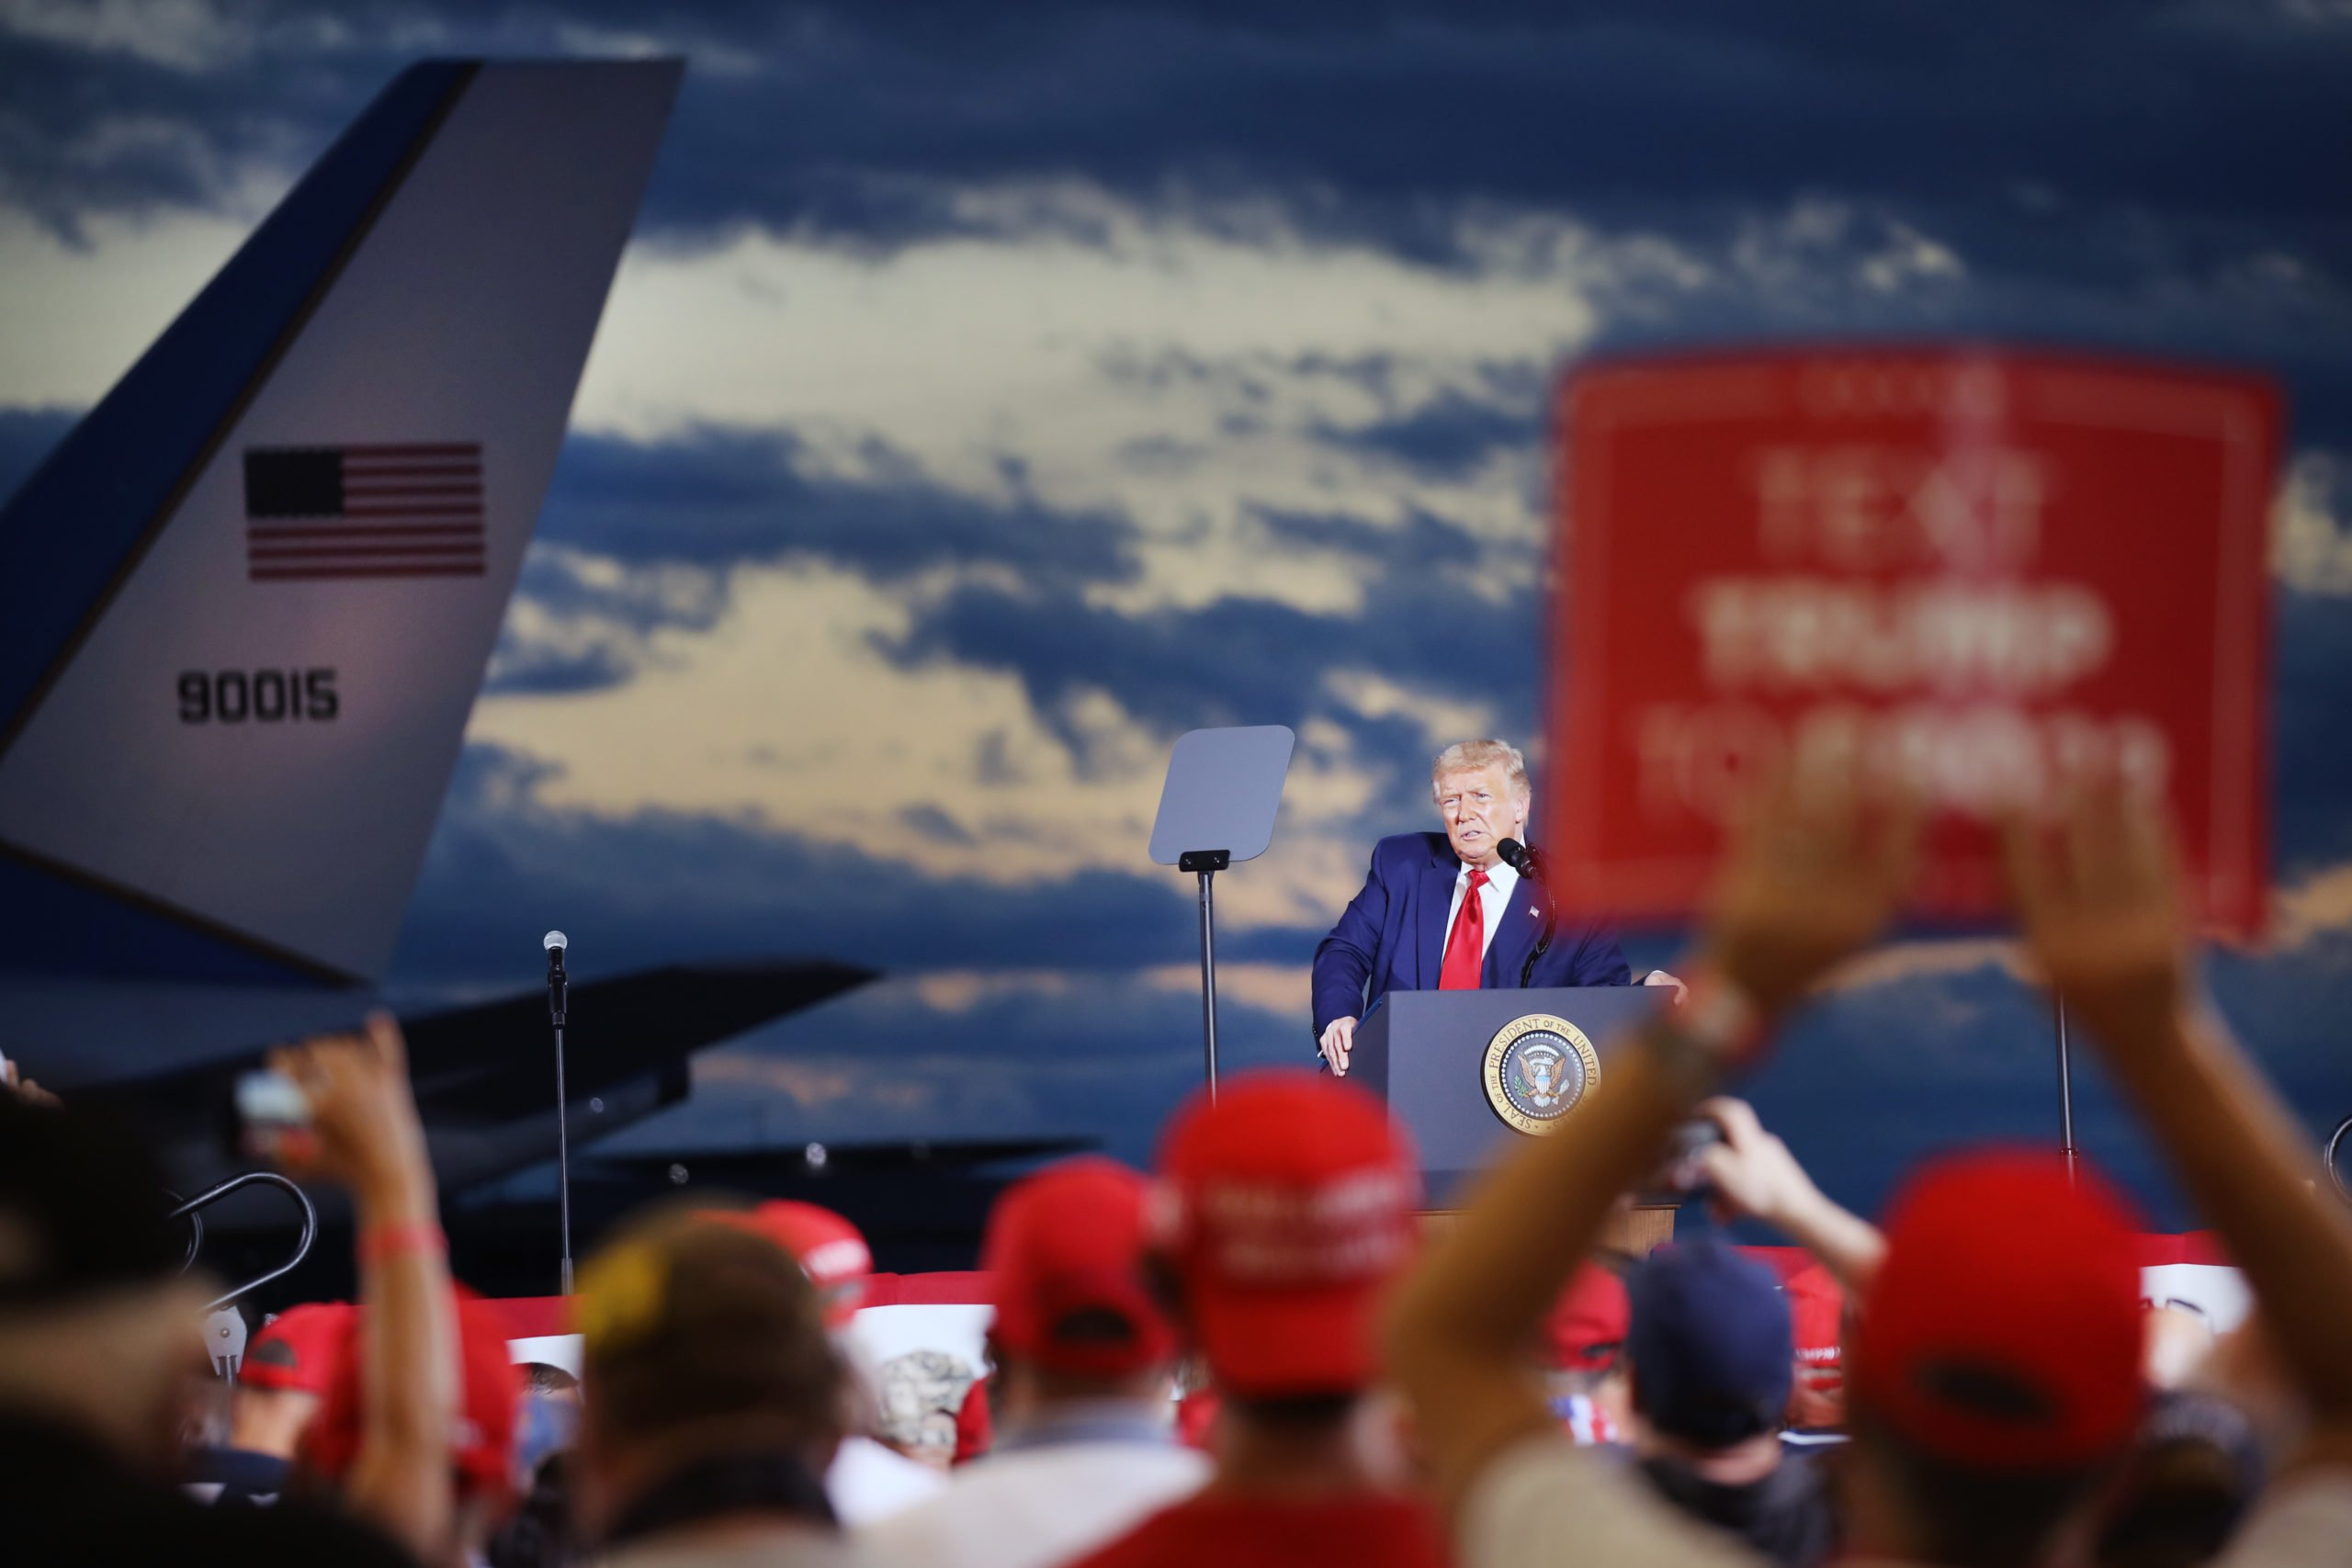 LONDONDERRY, NEW HAMPSHIRE - AUGUST 28: President Donald Trump speaks at an airport hanger at a rally a day after he formally accepted his party's nomination at the Republican National Convention on August 28, 2020 in Londonderry, New Hampshire. Addressing hundreds of supporters, many wearing face masks, Trump made his case for his re-election against his opponent Joe Biden. Trump spoke at at Pro Star Aviation. (Photo by Spencer Platt/Getty Images)